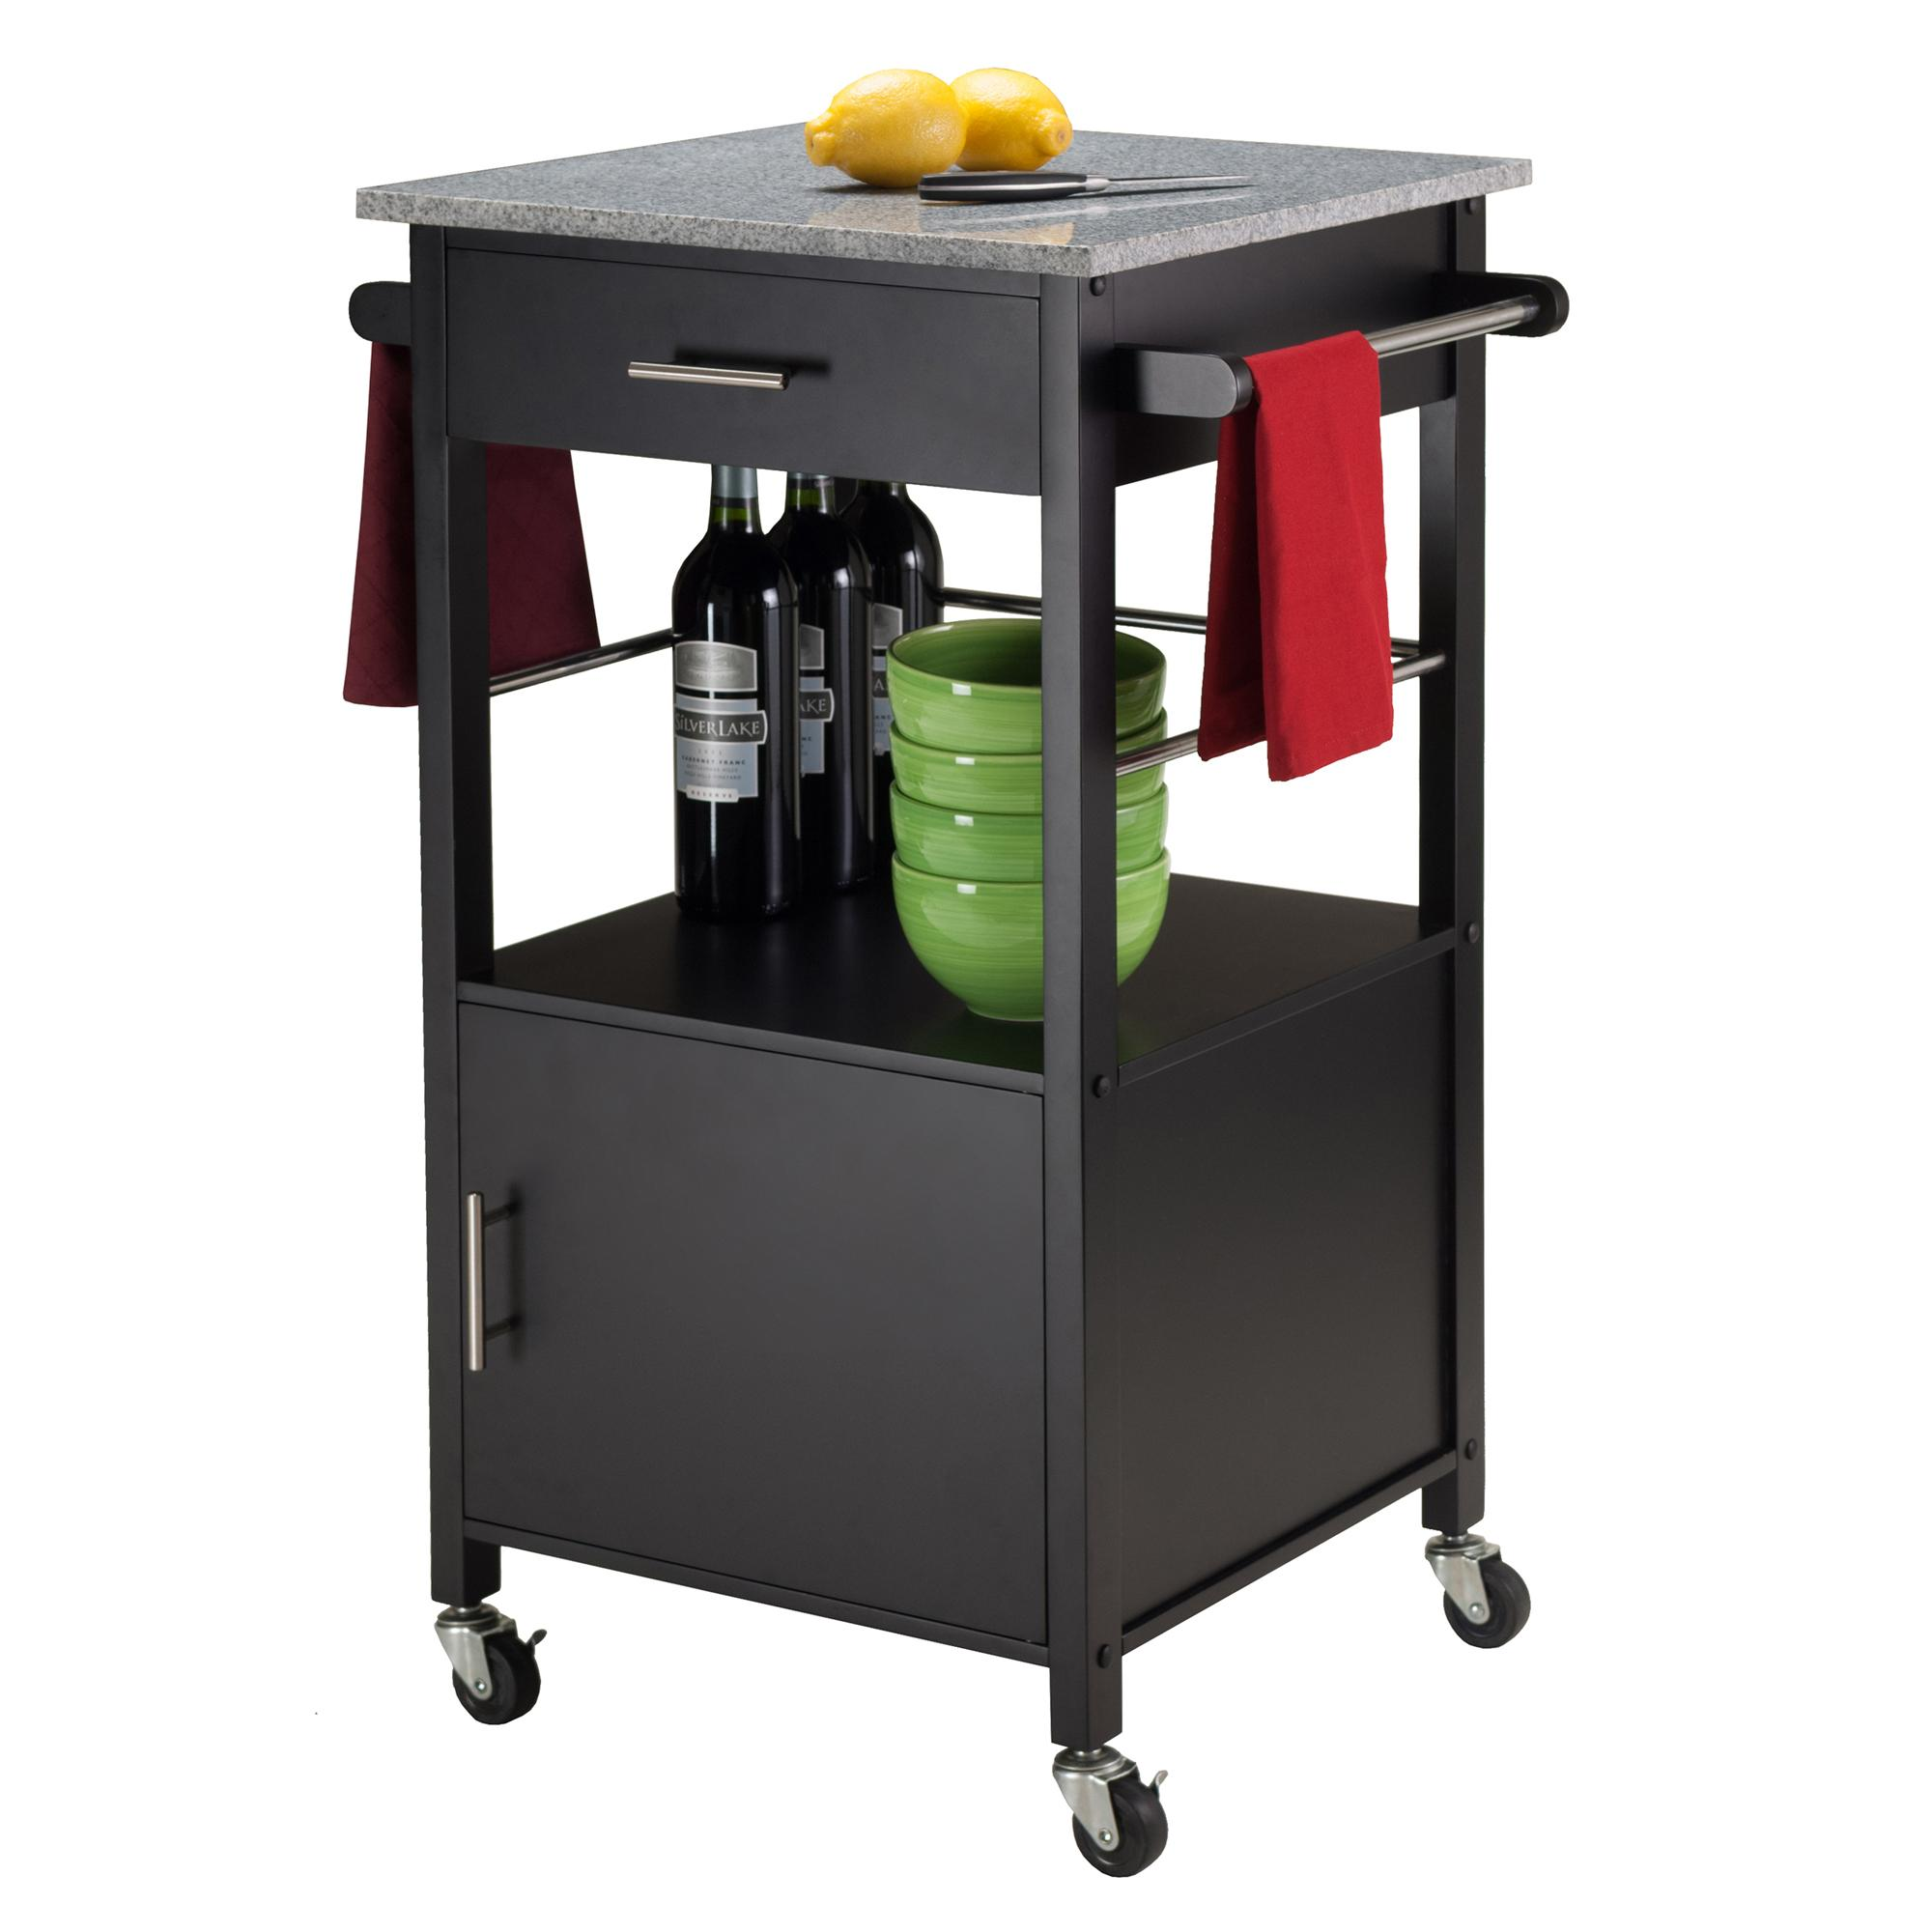 Winsome Wood Davenport Kitchen Cart with Granite Top, Black: Amazon on kitchen cart cabinets, kitchen cart with hutch, dresser granite top, kitchen cart drawers, kitchen cart shelf, home bar granite top, table granite top, kitchen cart black granite, kitchen cart with wine rack, cabinet granite top, kitchen cart with doors, kitchen cart vanity, breakfast bar granite top, sideboard granite top, kitchen cart with breakfast bar, kitchen cart with drop leaf, entertainment center granite top, kitchen cart rustic, kitchen cart island, buffet granite top,